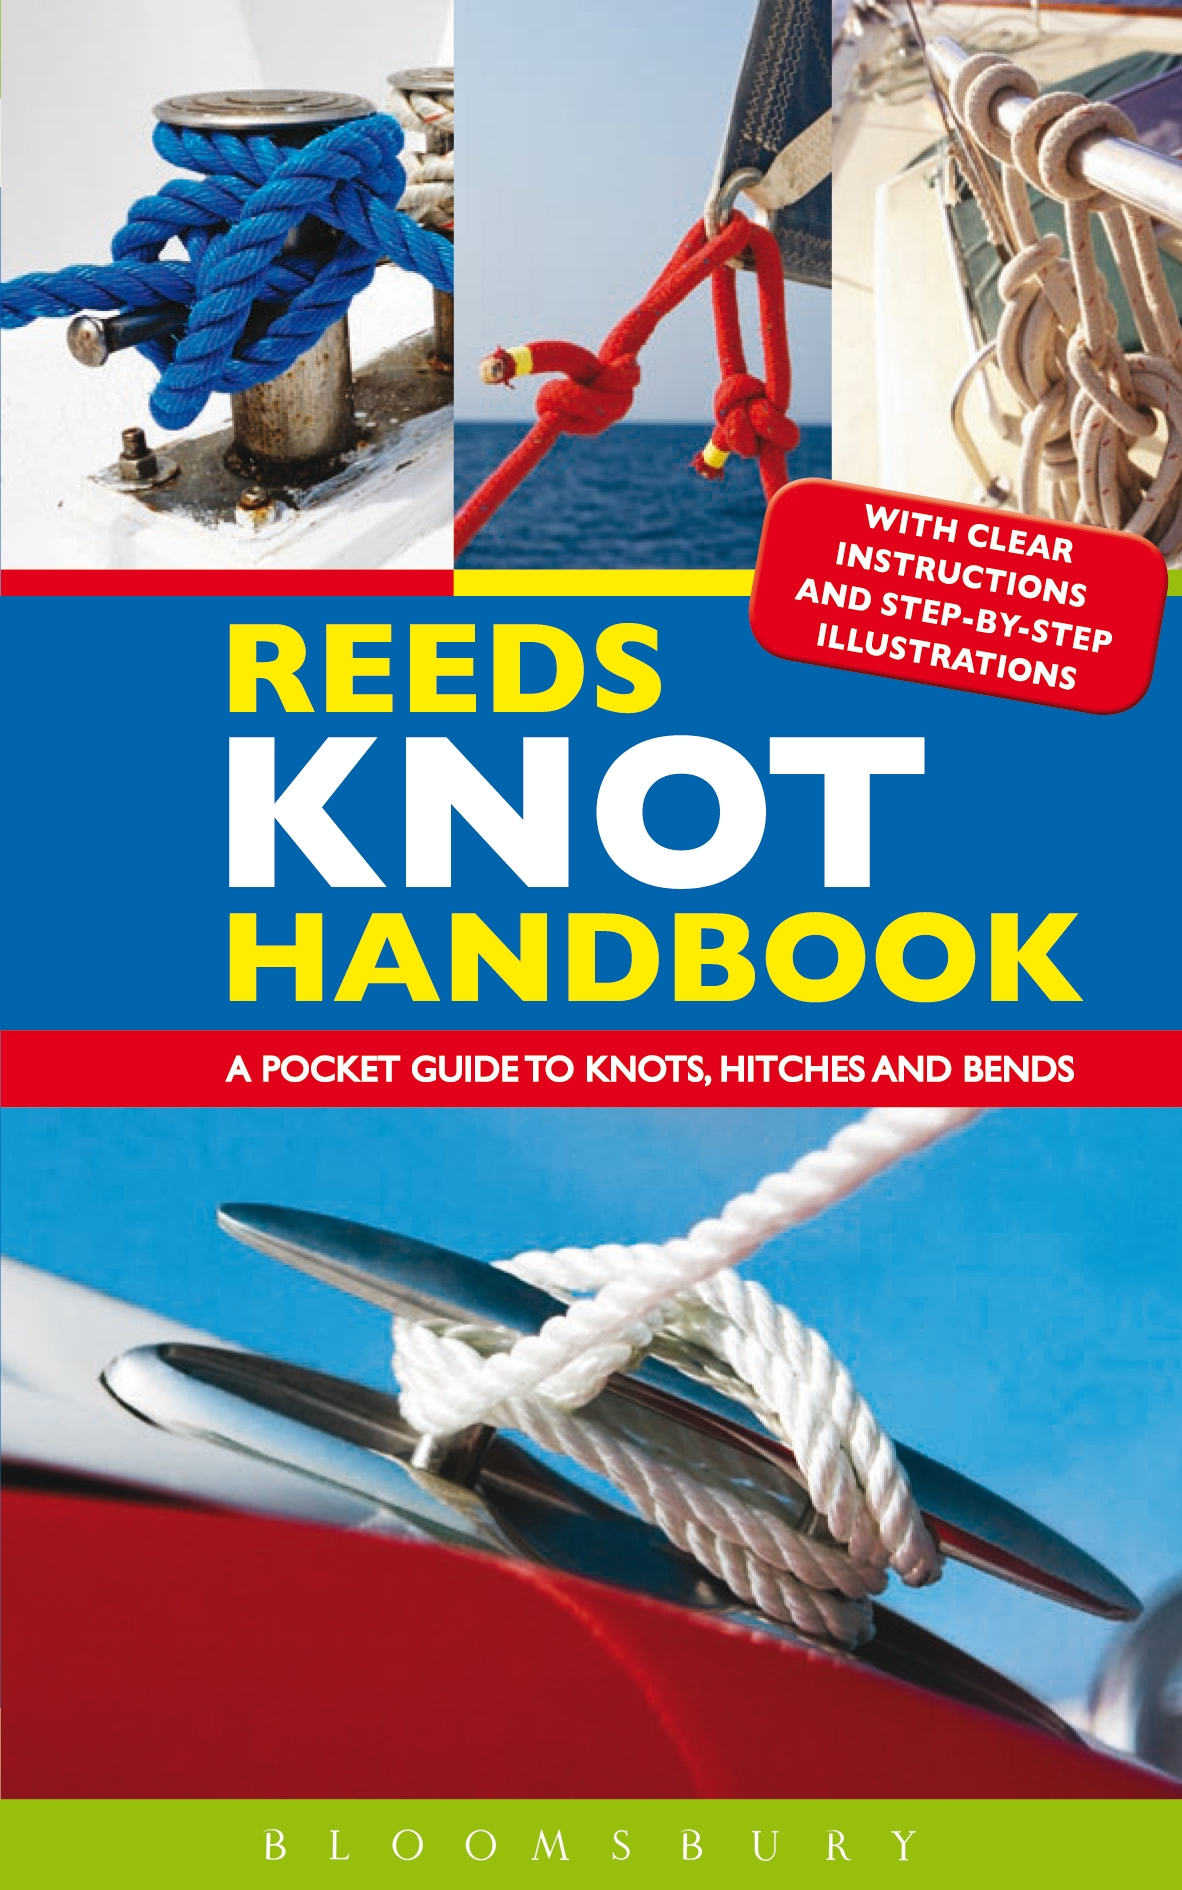 Reeds Knot Handbook A Pocket Guide to Knots,  Hitches and Bends